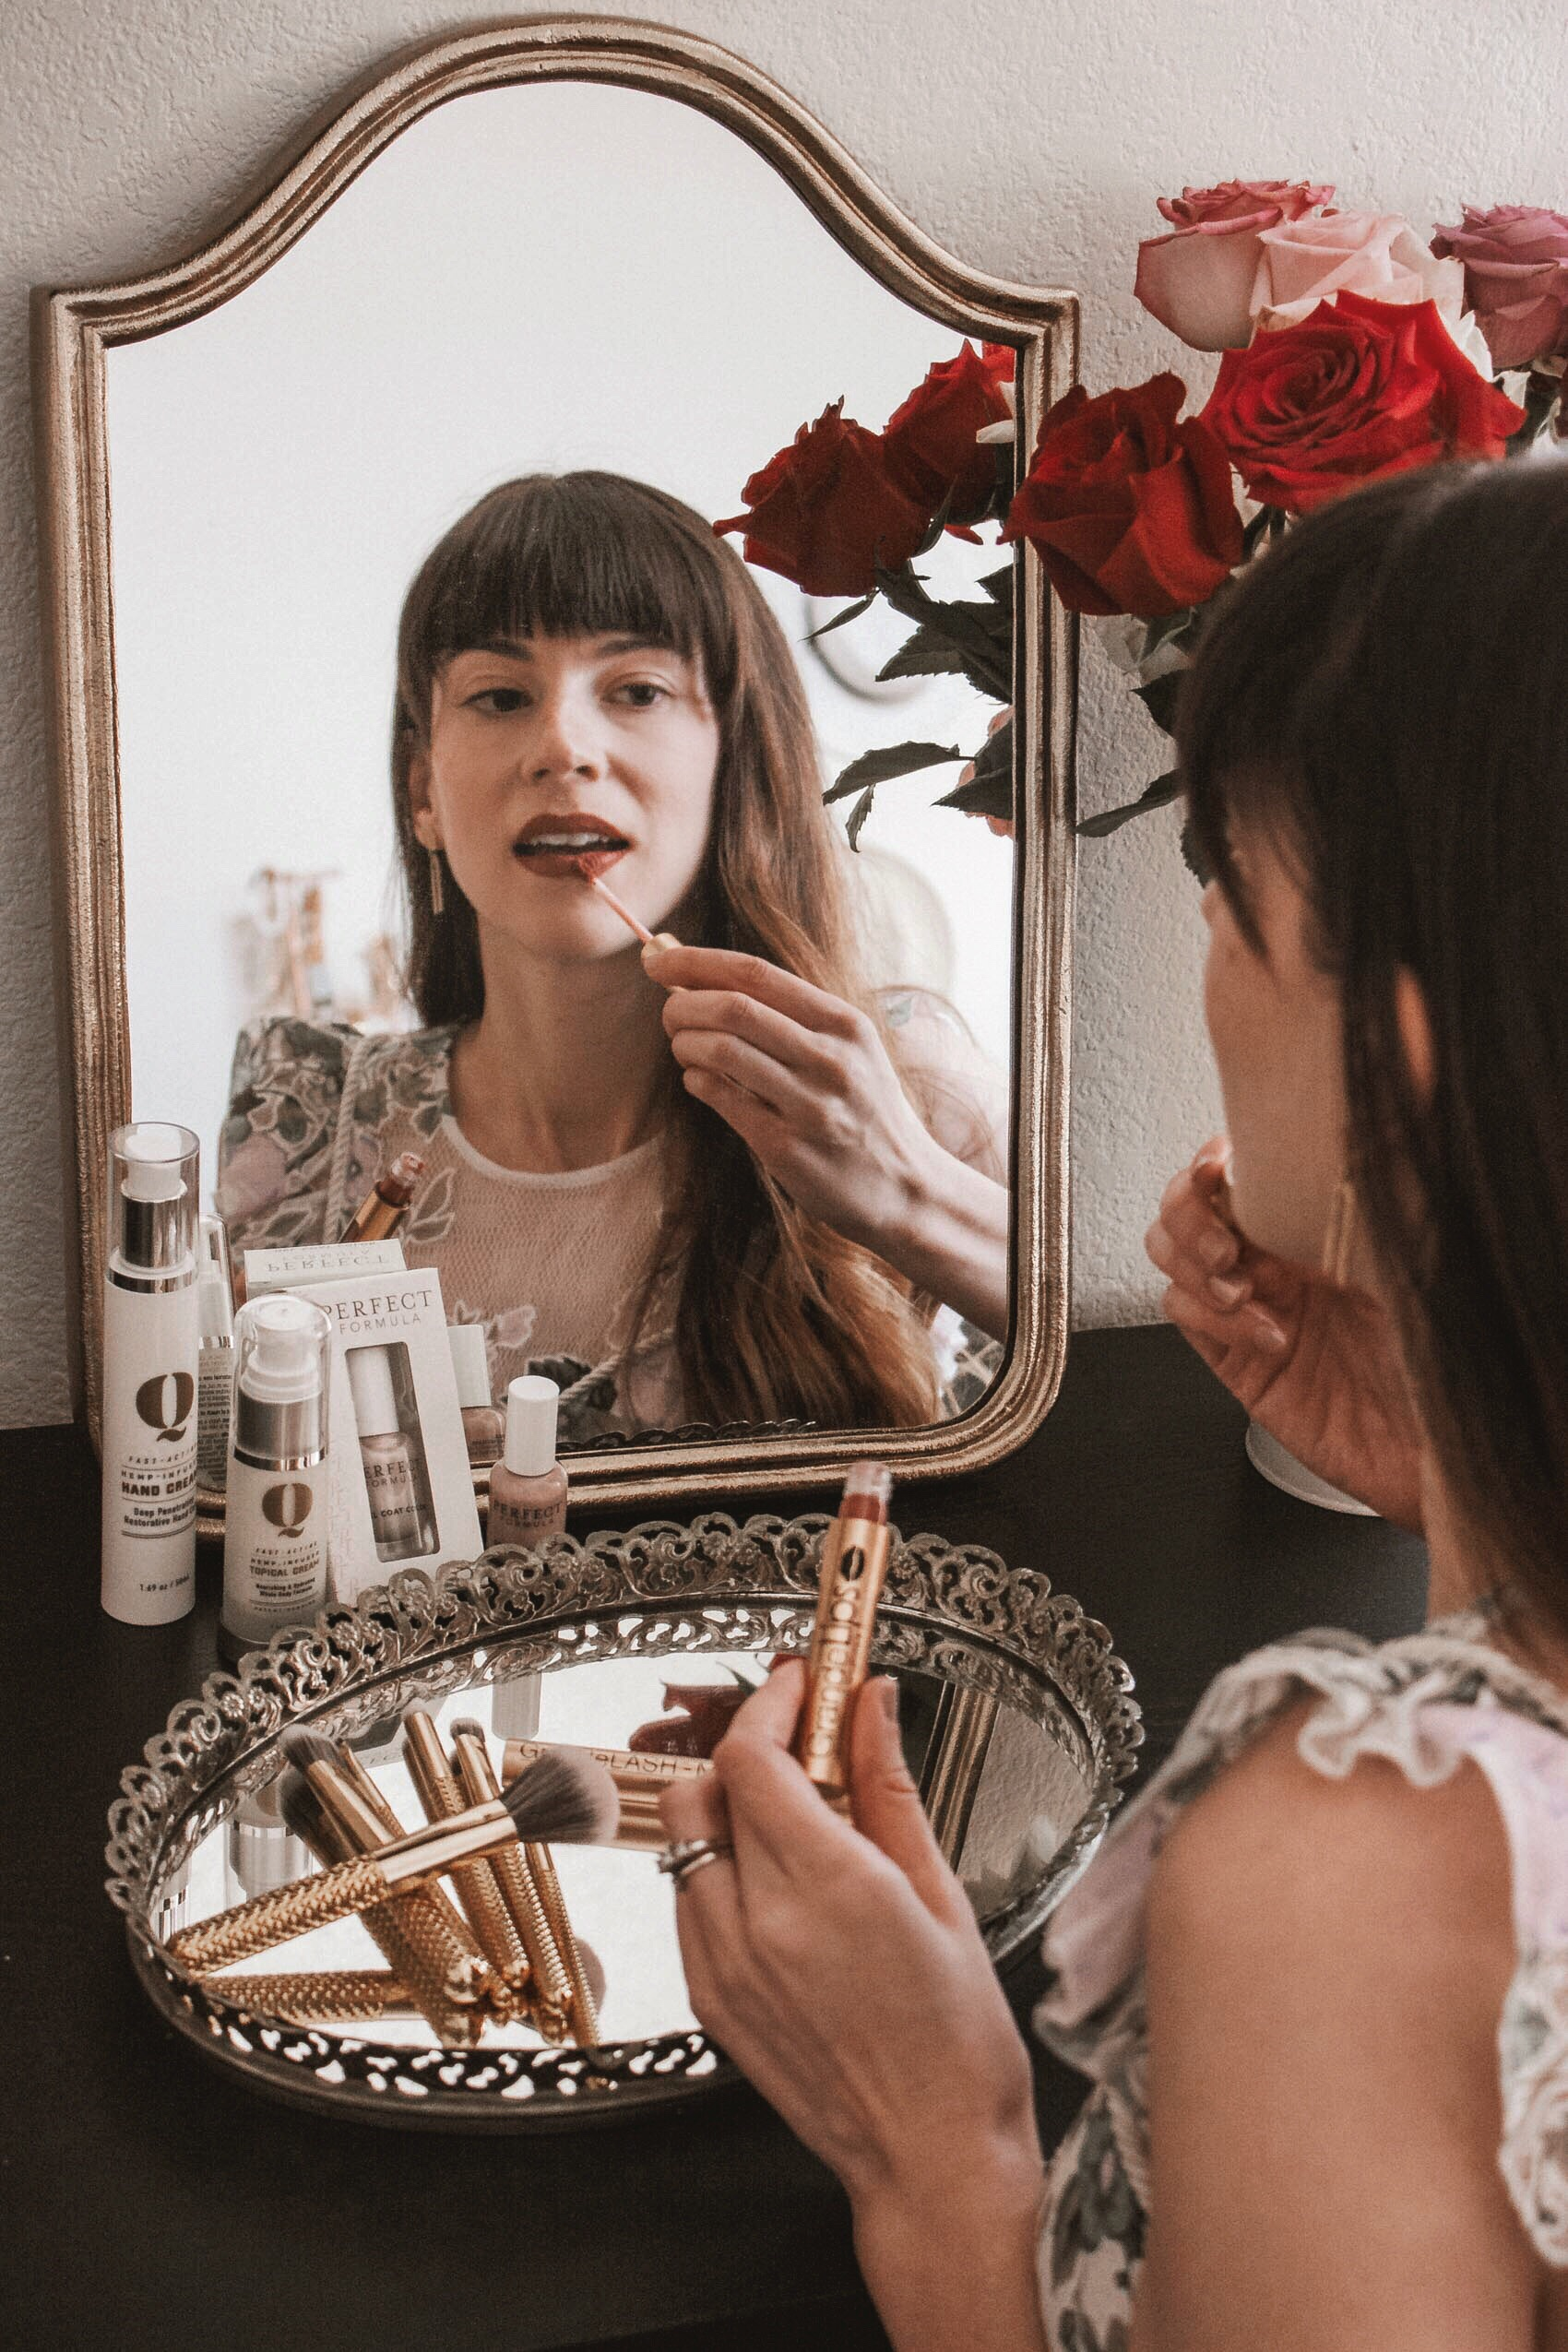 How to Get Red Carpet Ready with Hand & Stone Spa, Dermalogica, Perfect Formula Gel Nails, The Gold Q Hand Cream, Grande Cosmetics, Moda Brushes